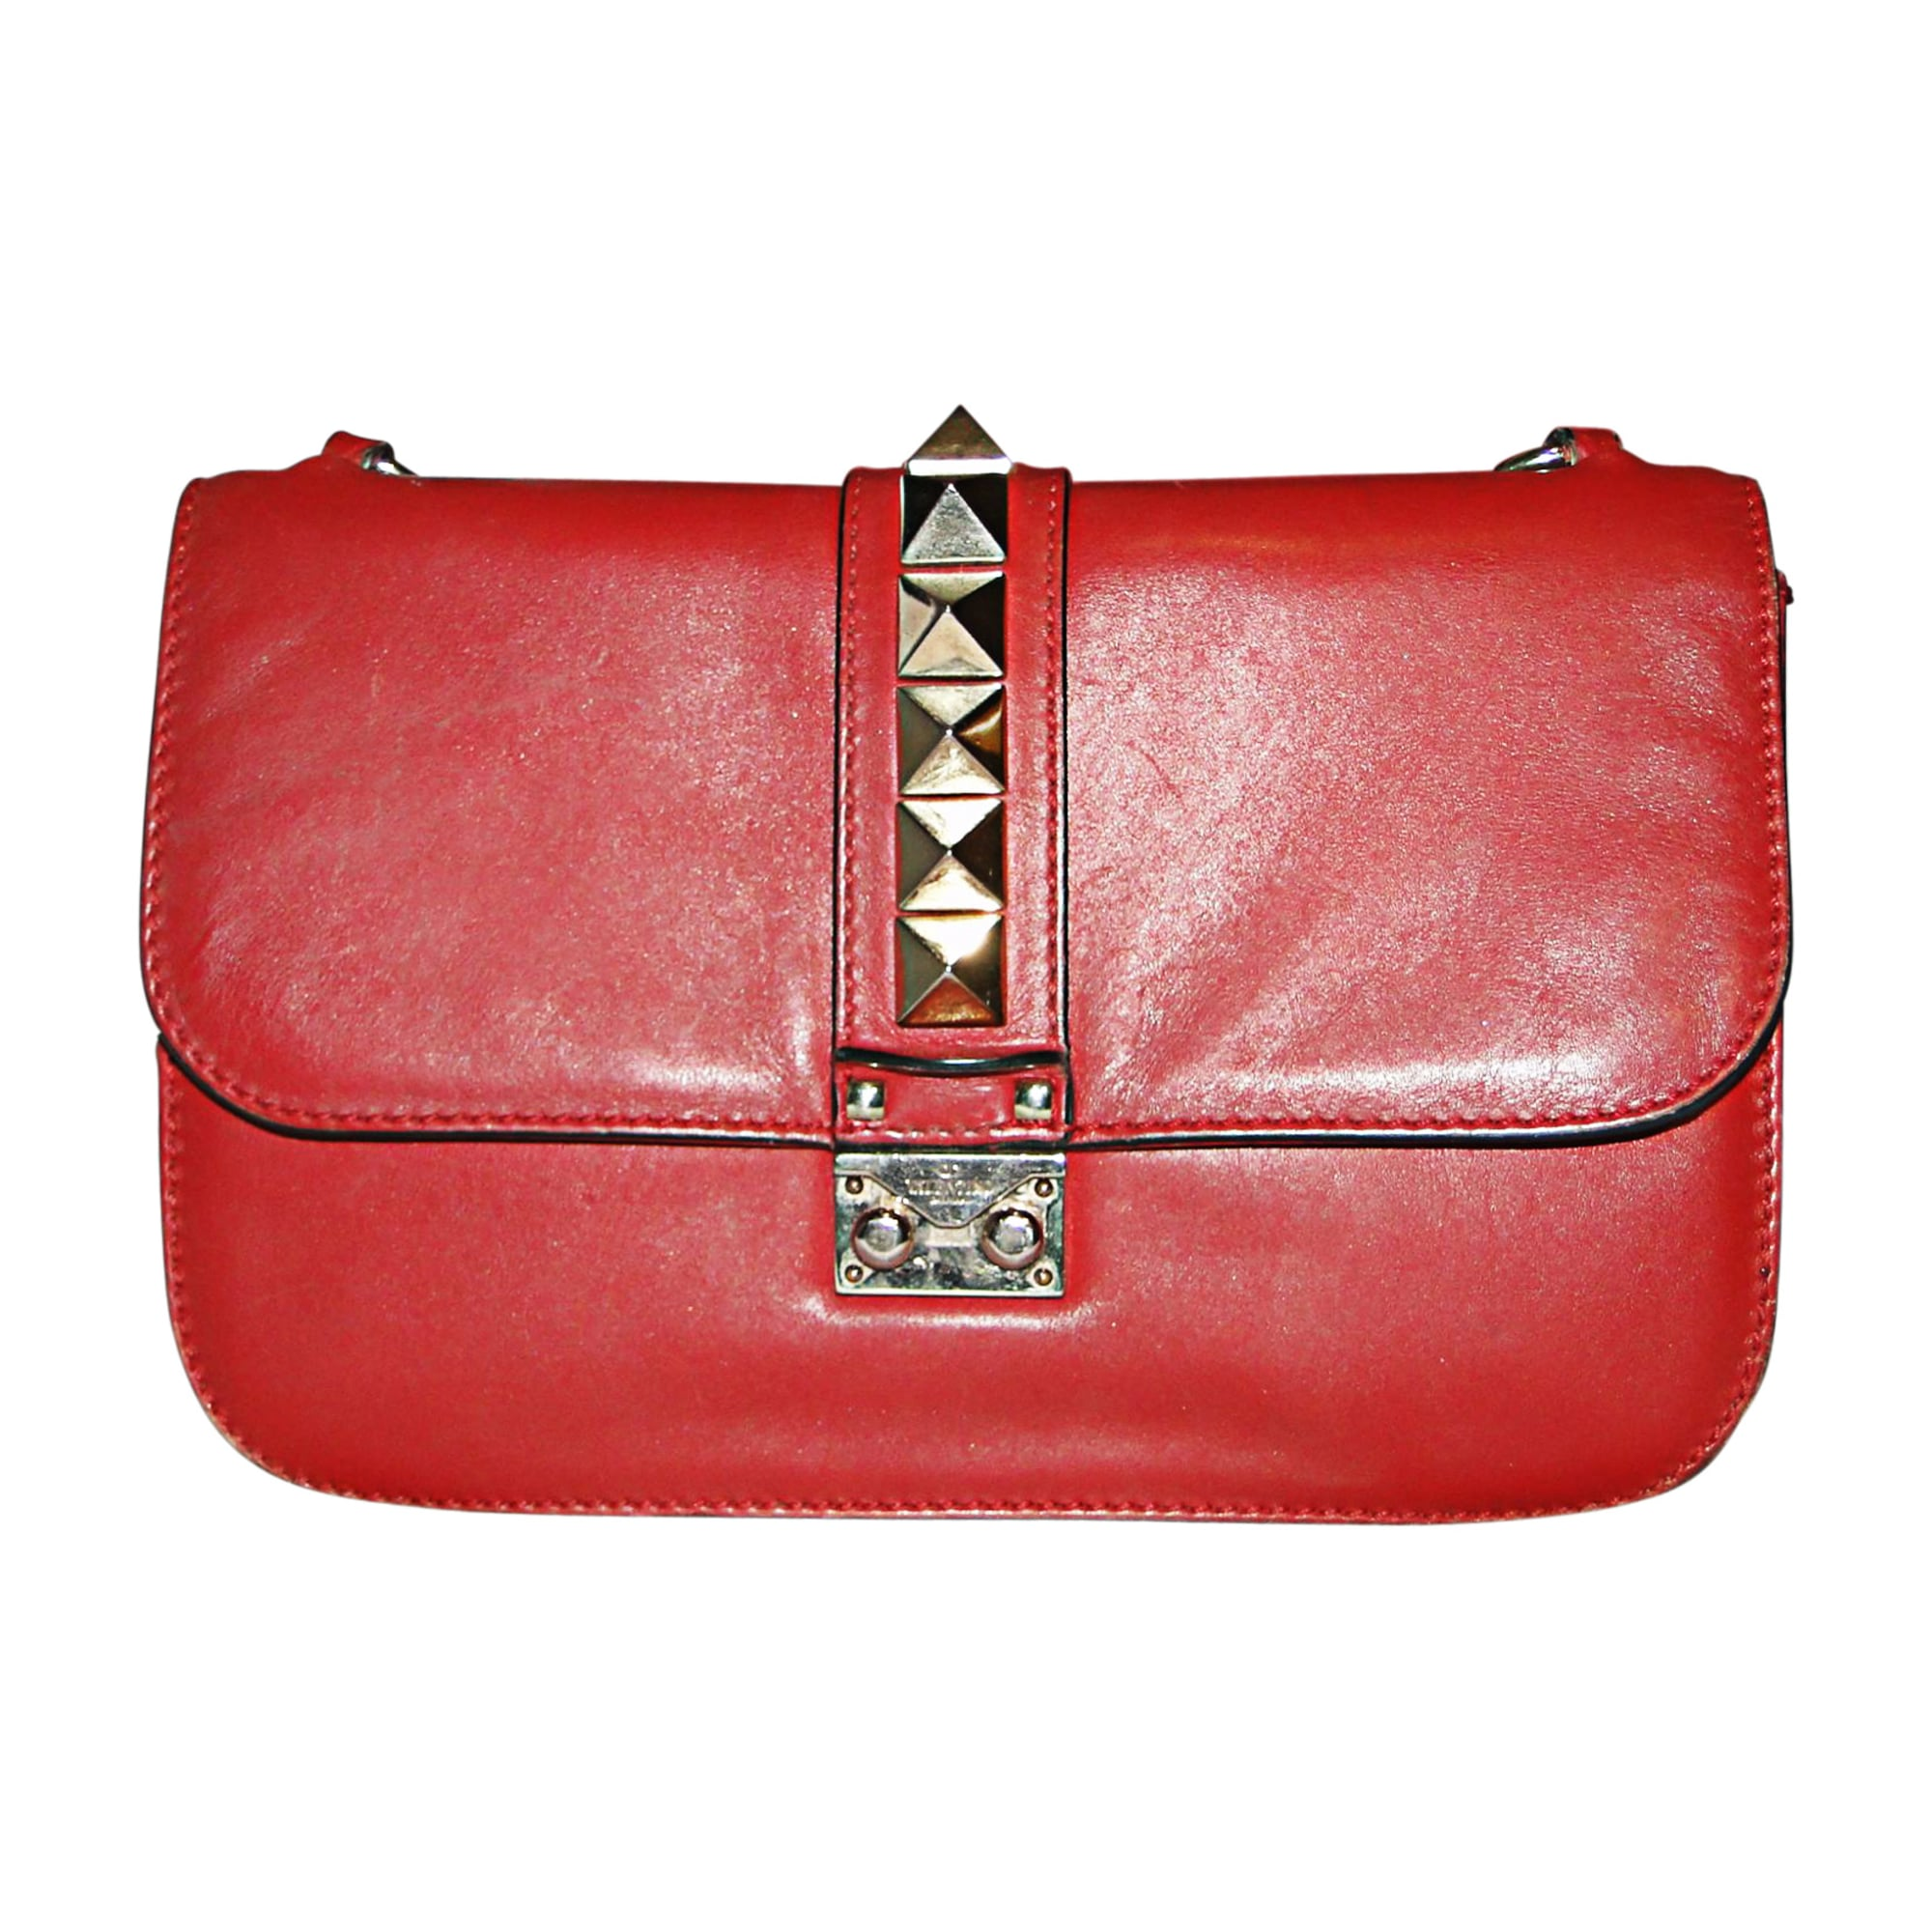 Leather Shoulder Bag VALENTINO Glam lock Red, burgundy